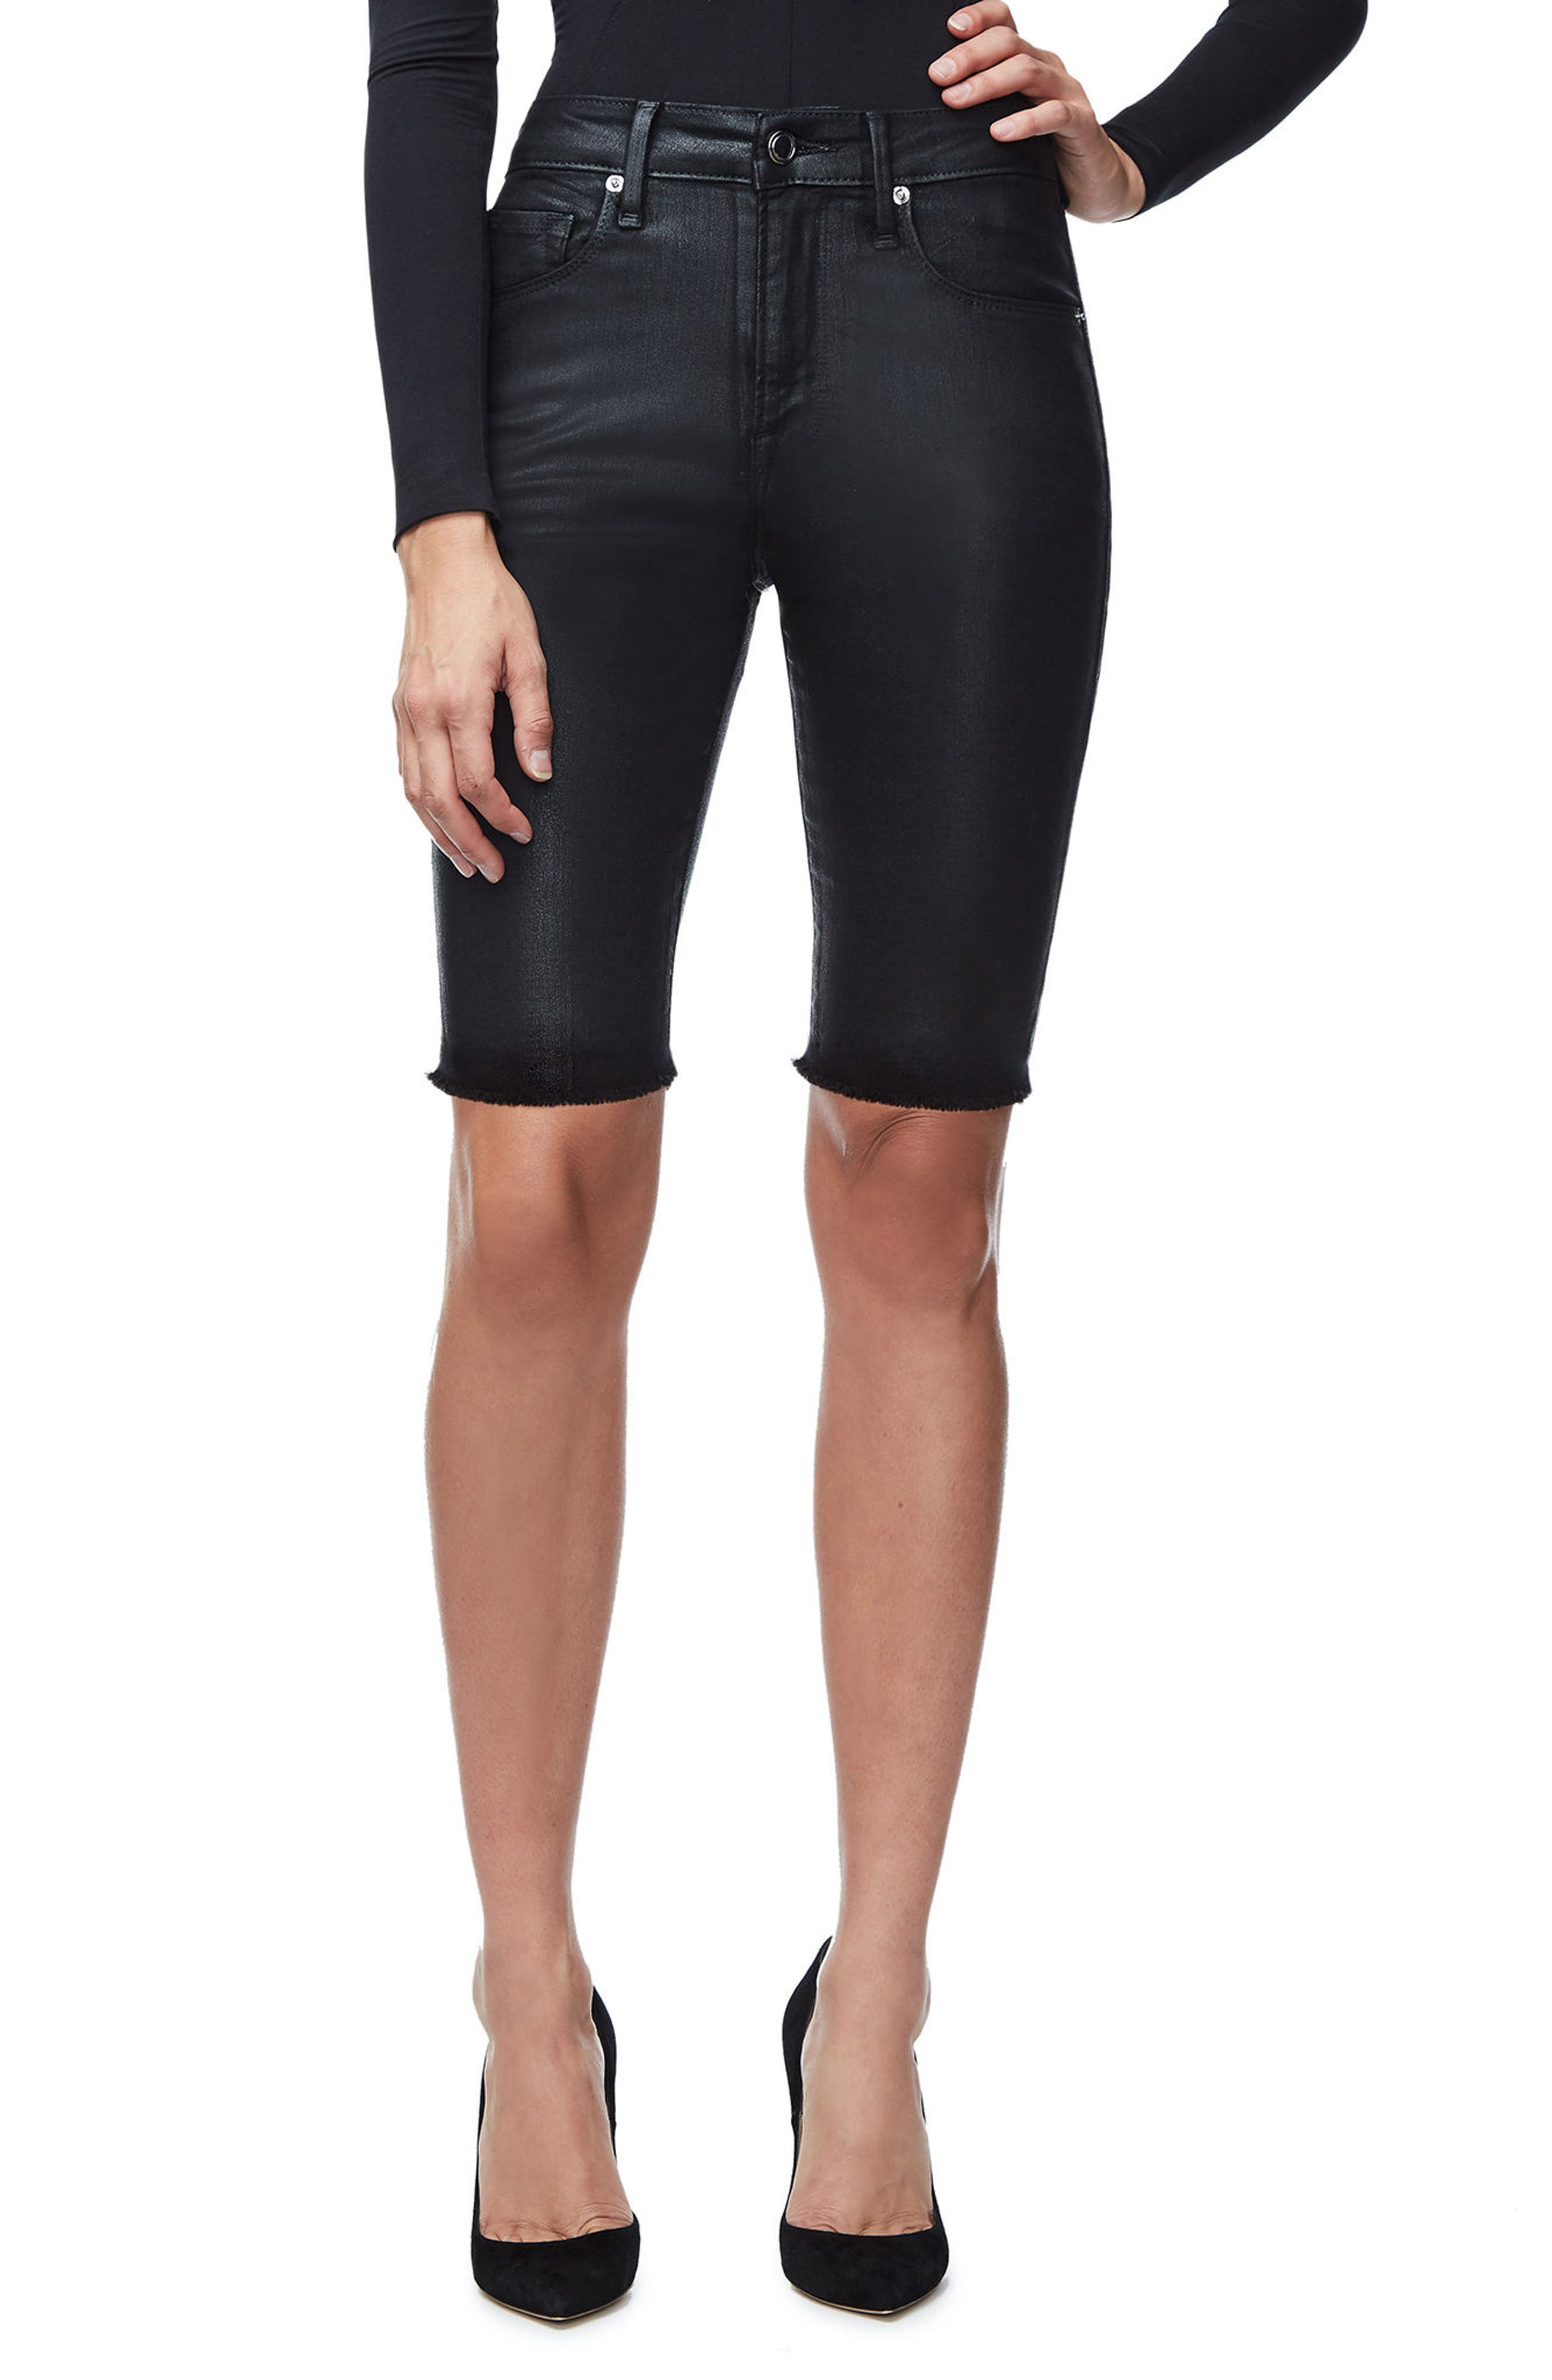 Main Image - Good American The Waxed Bermuda High Waist Shorts (Black 014) (Extended Sizes)